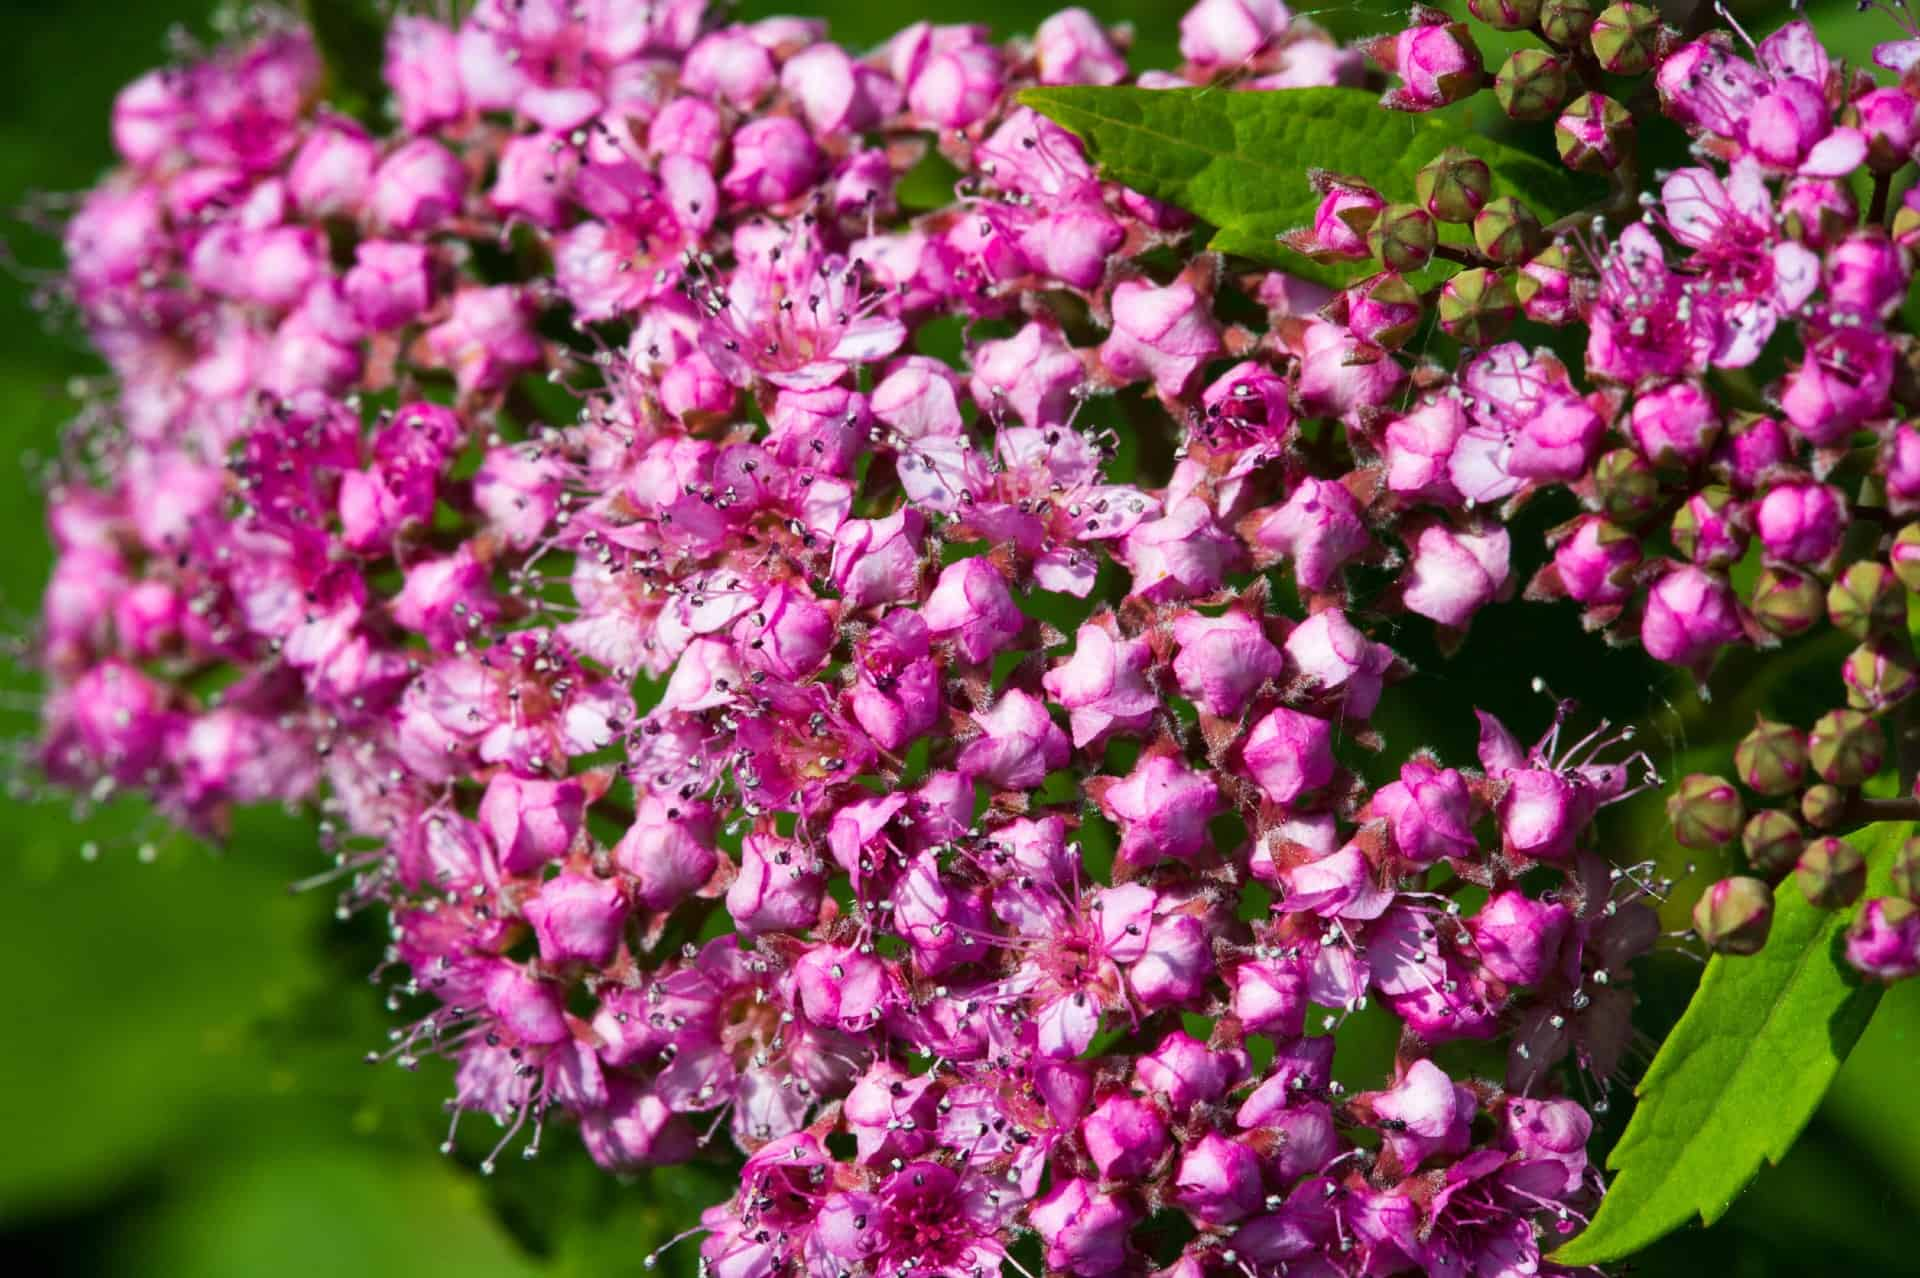 Spirea shrubs are fast growers.